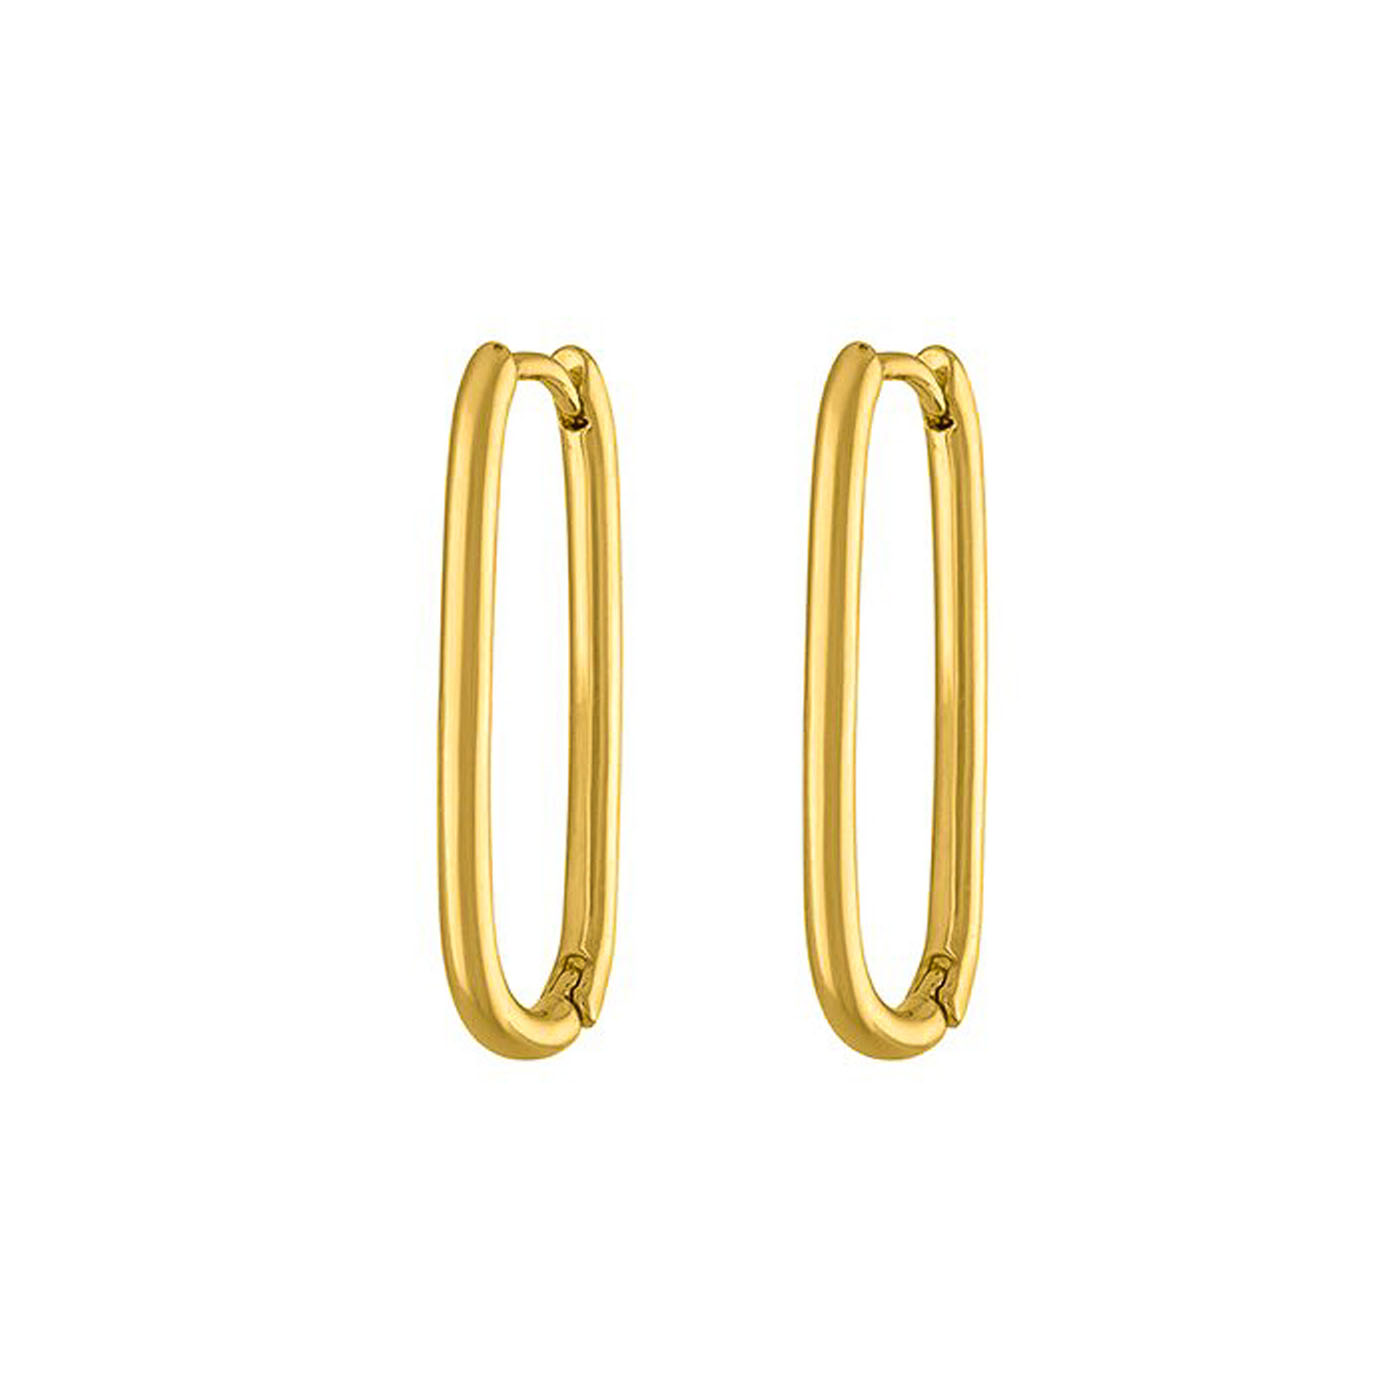 boucles d'oreilles épingle gold